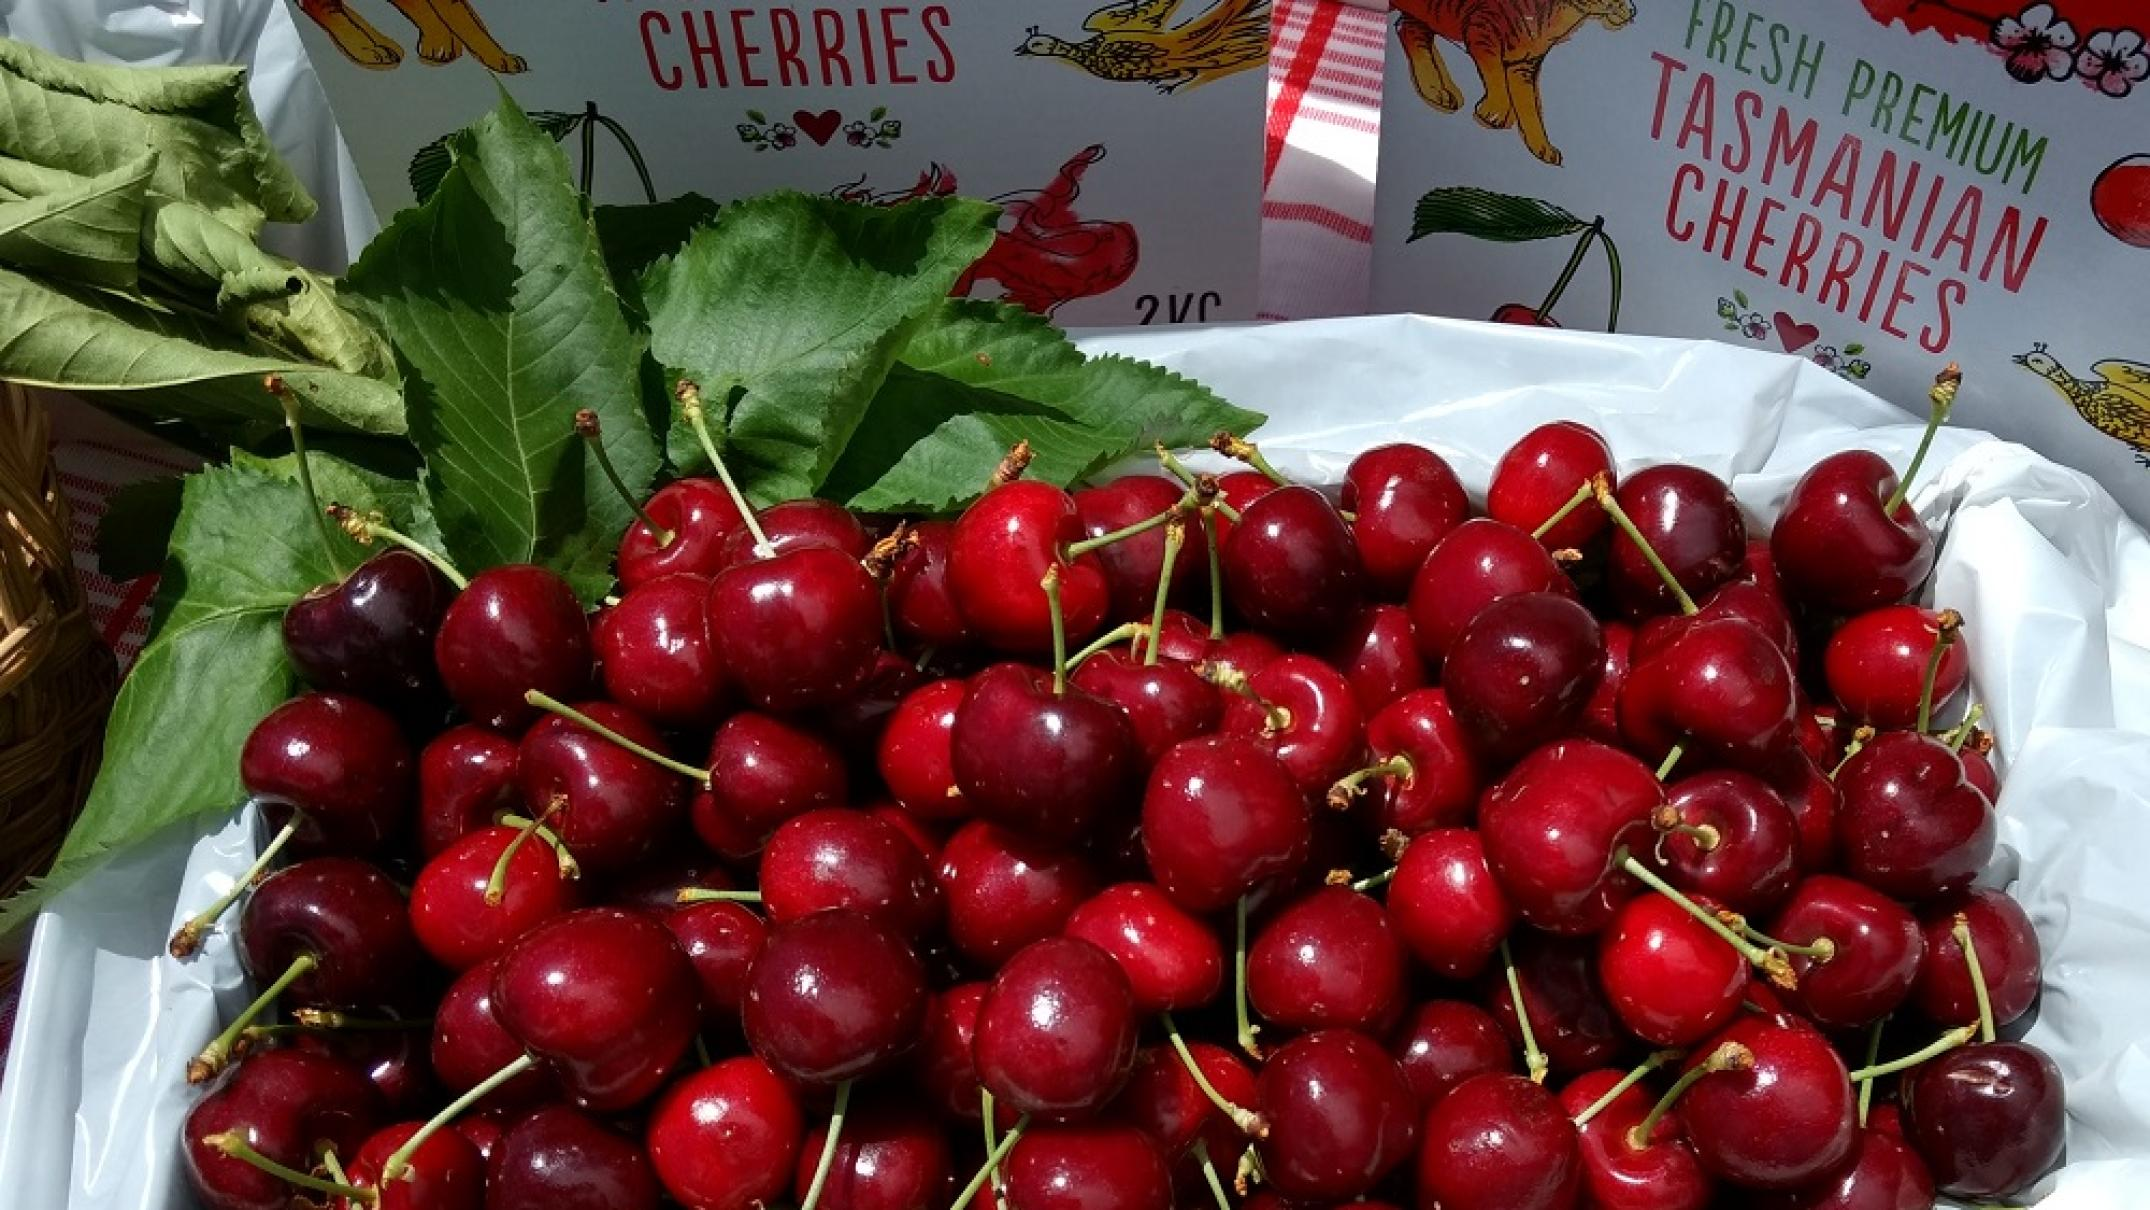 'They're making a form of cash': Tassie grower welcomes Hong Kong seizure of falsely branded cherries